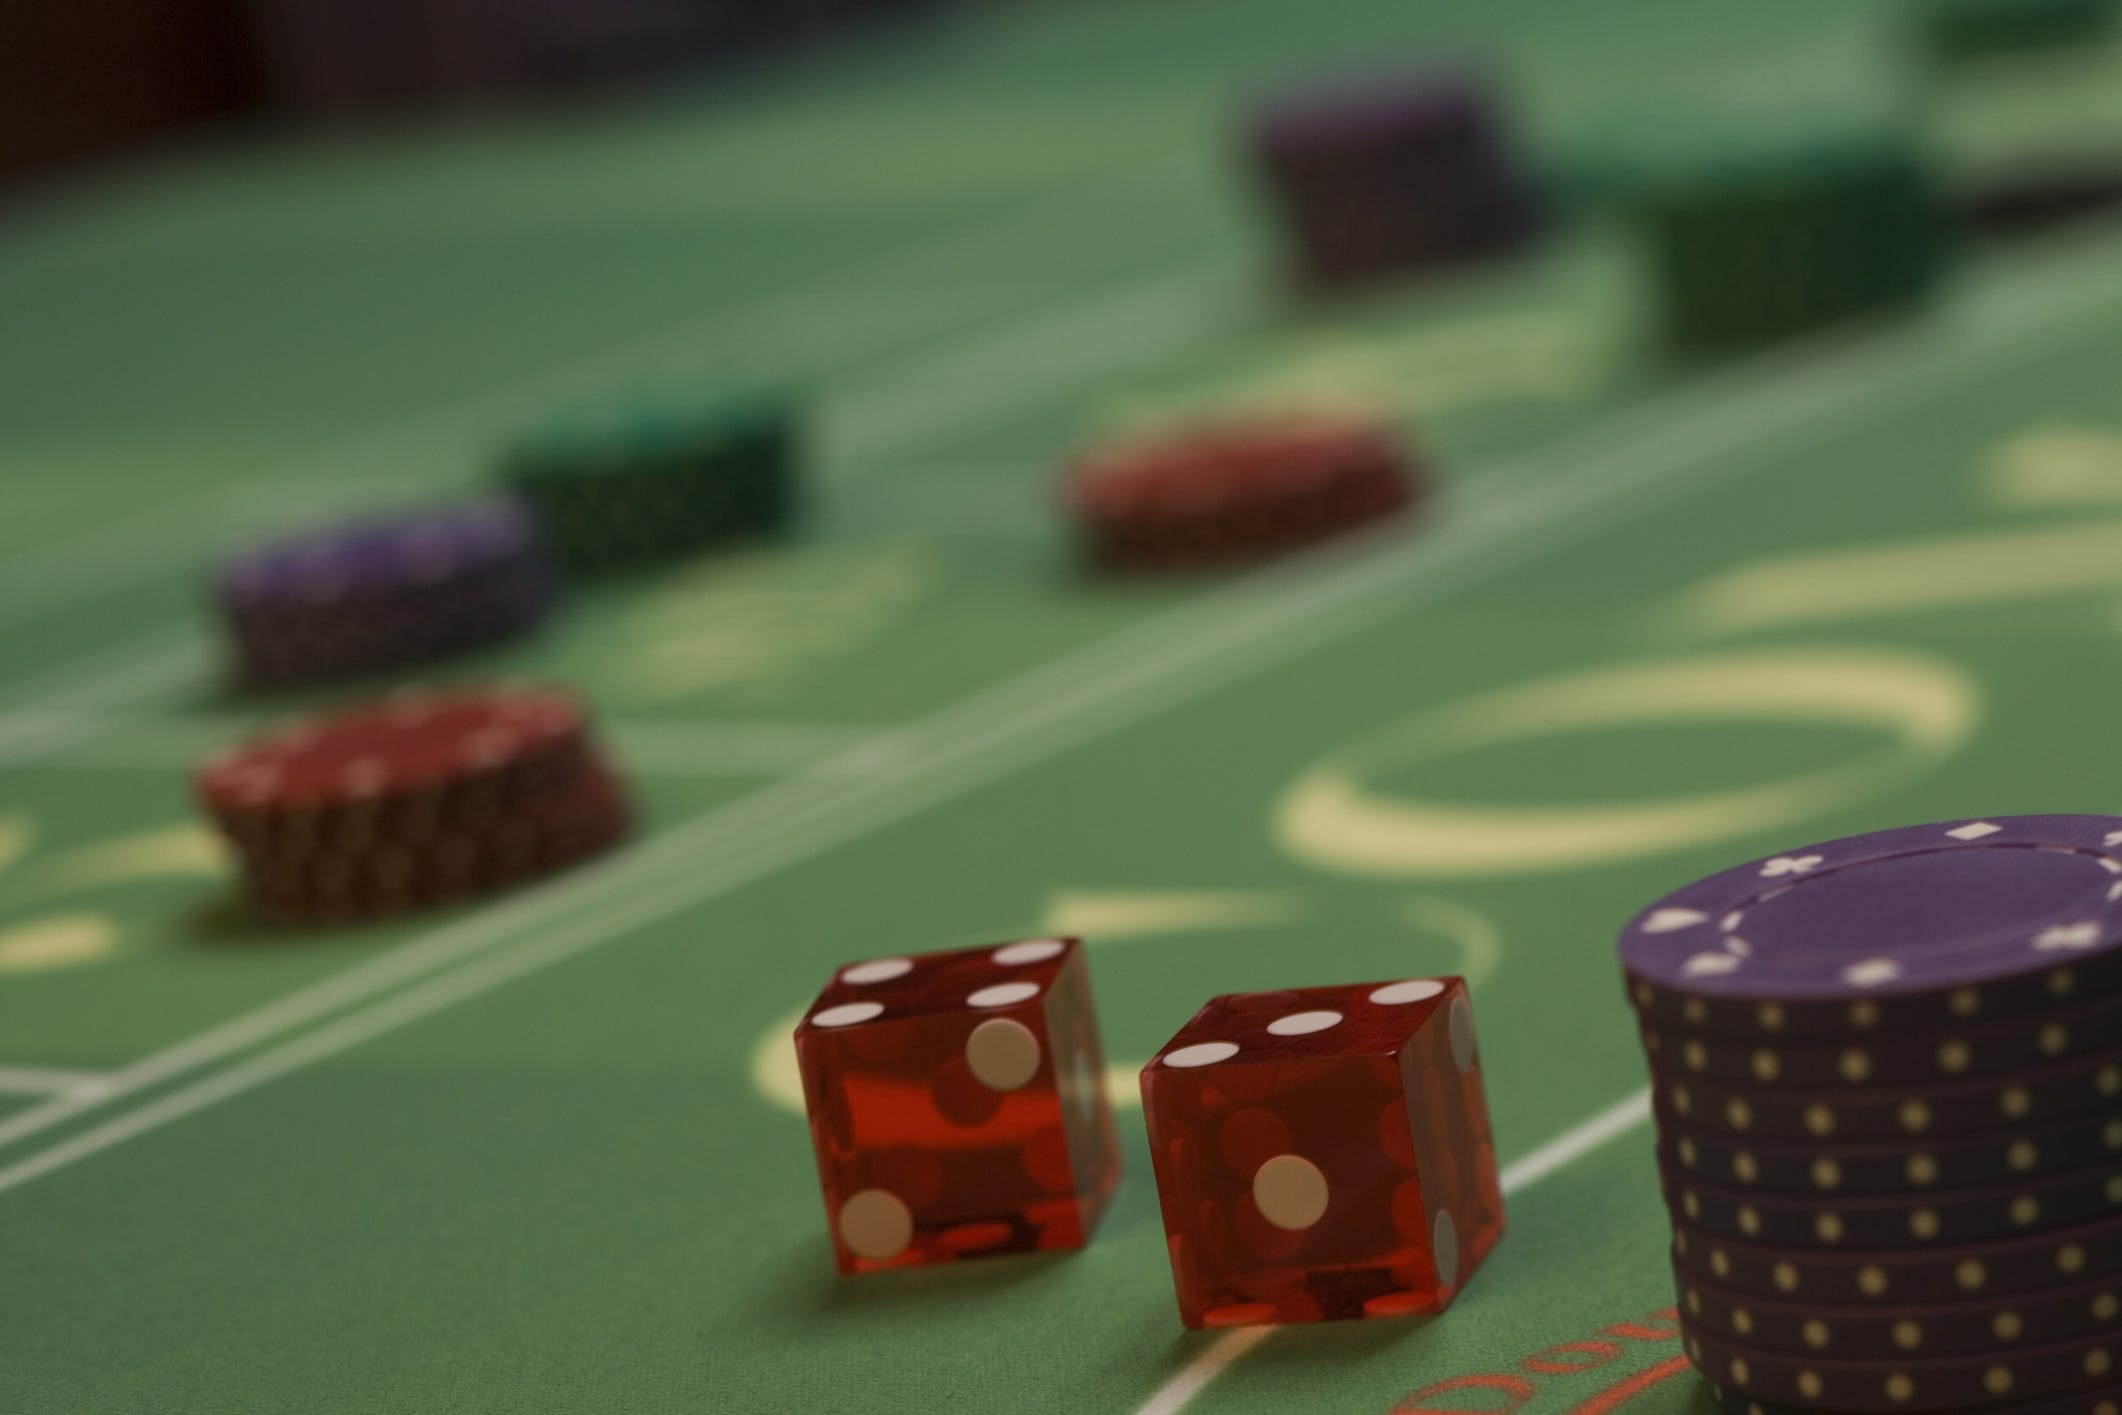 Texas holdem rules wiki